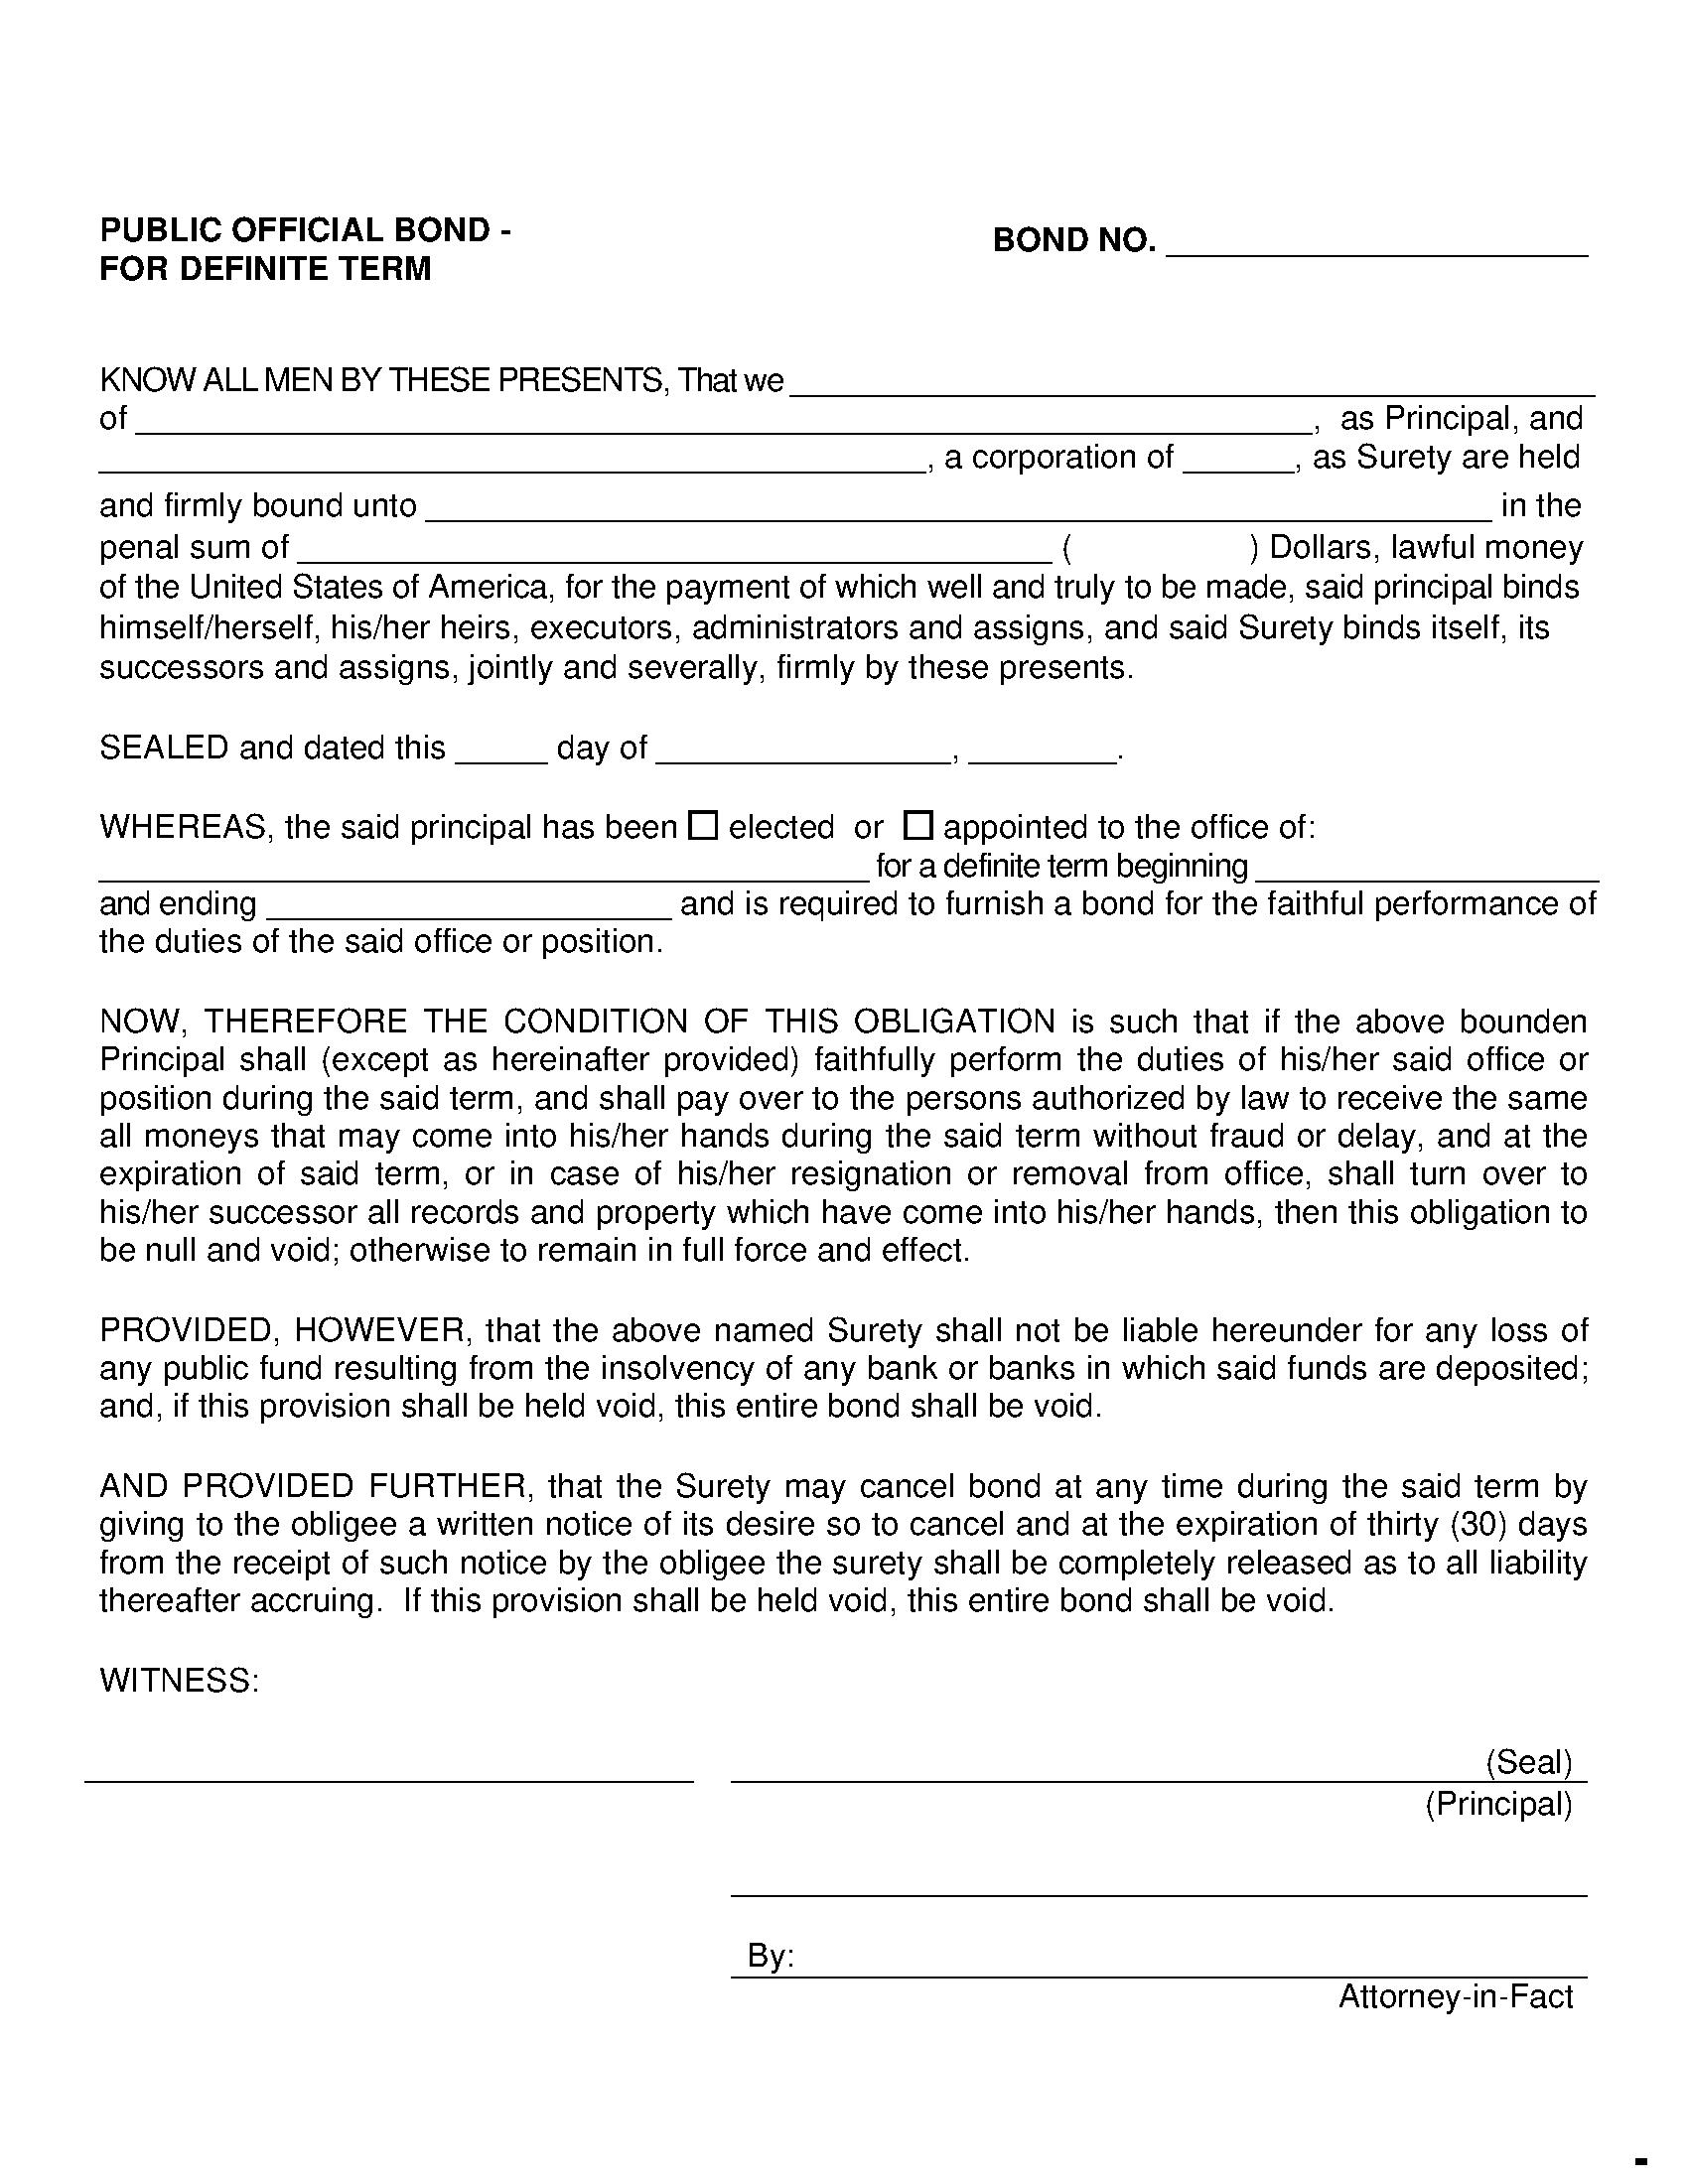 Public Official Position Schedule - Other than Treasurer or Tax Collector Bond sample image